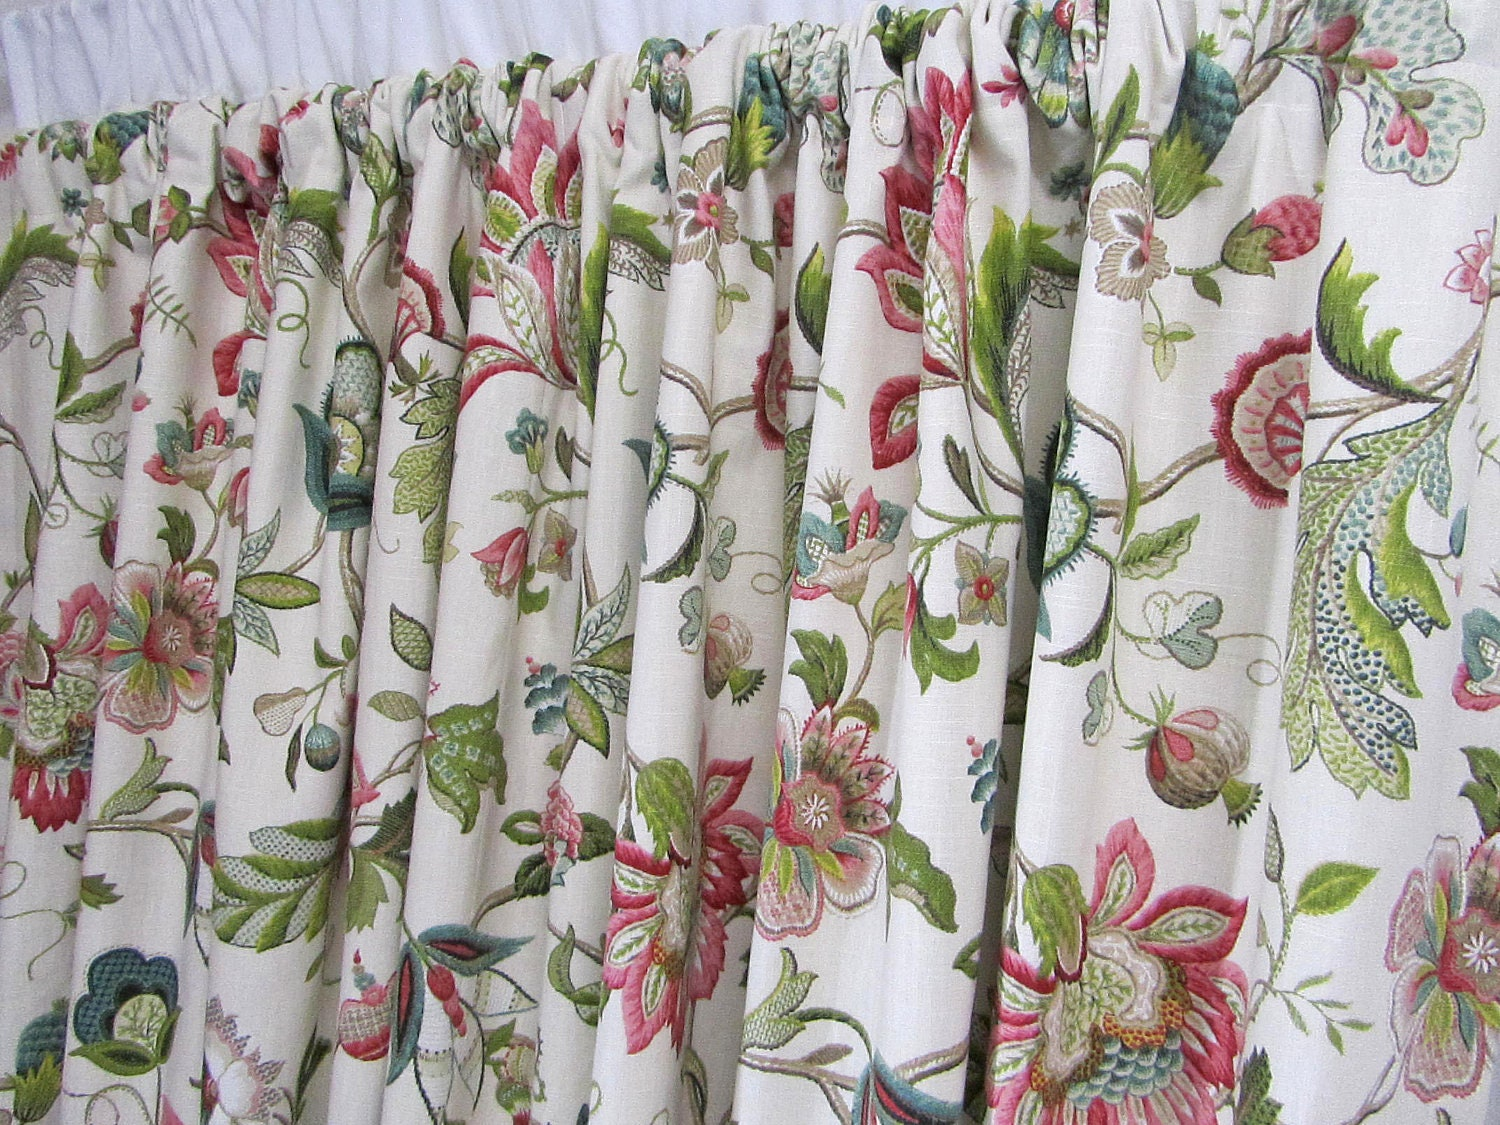 Bird curtain panels - Floral Curtains Jewel Tone Window Curtains Jacobean Floral Rosey Red Teal Drapes